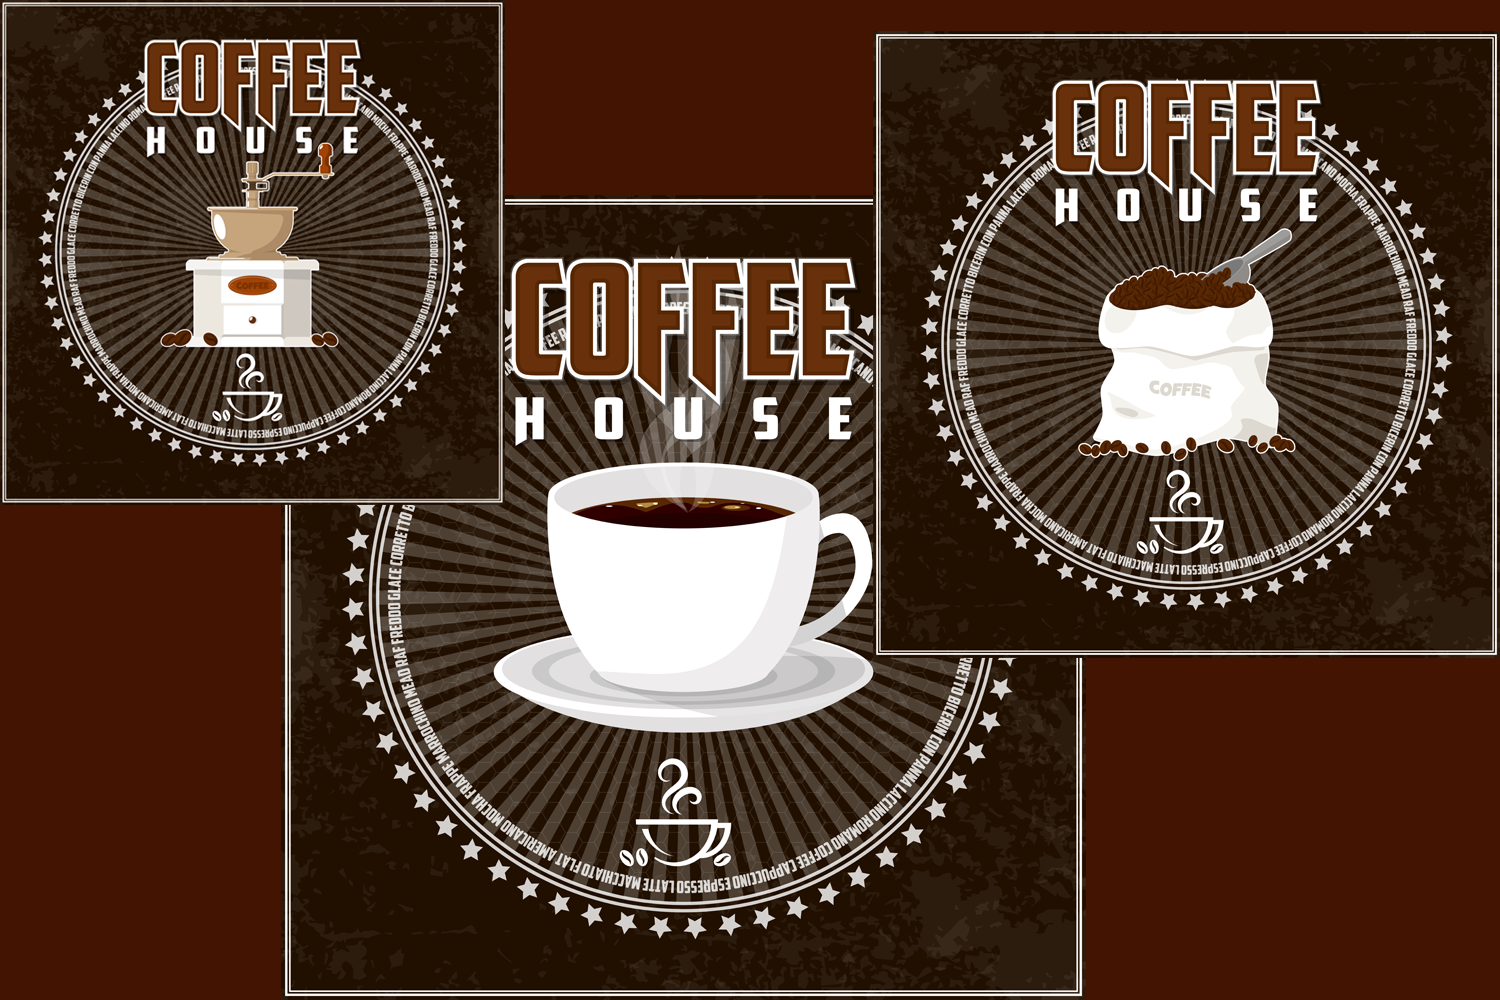 Coffee house emblem and items illustration. example image 2